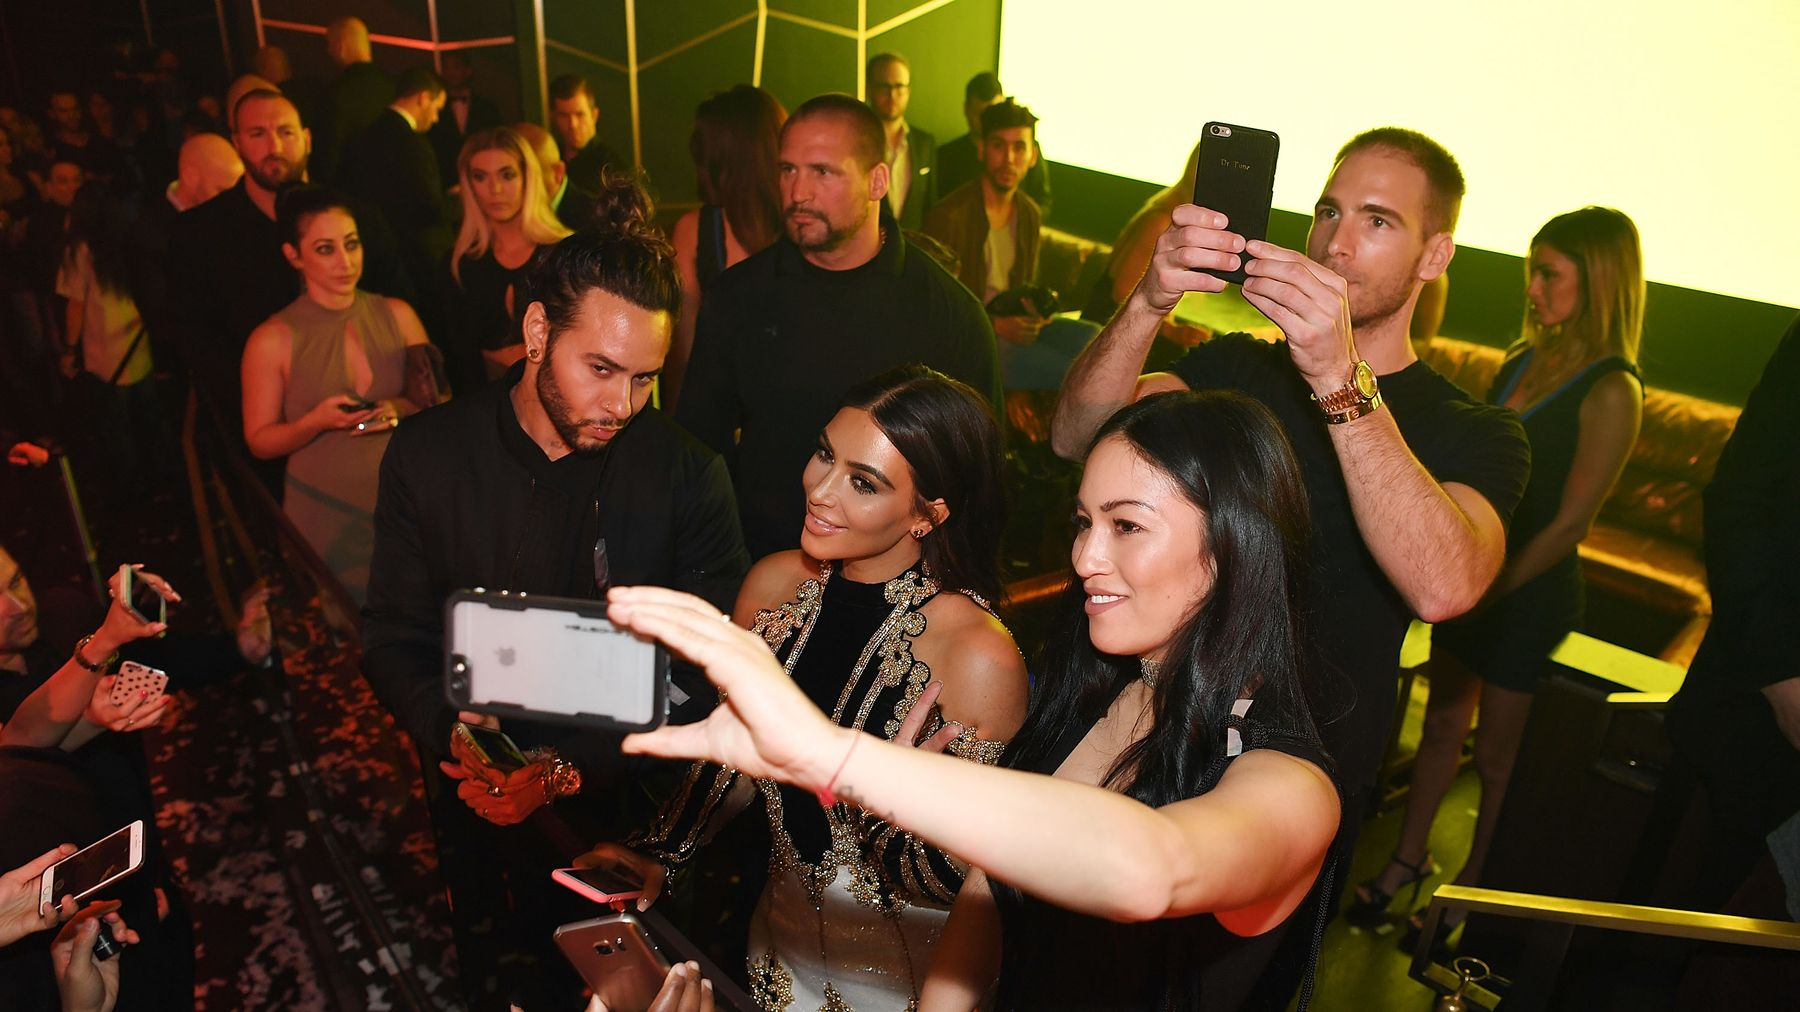 Every Rumour About Why Kim Kardashian Fired Her Assistant